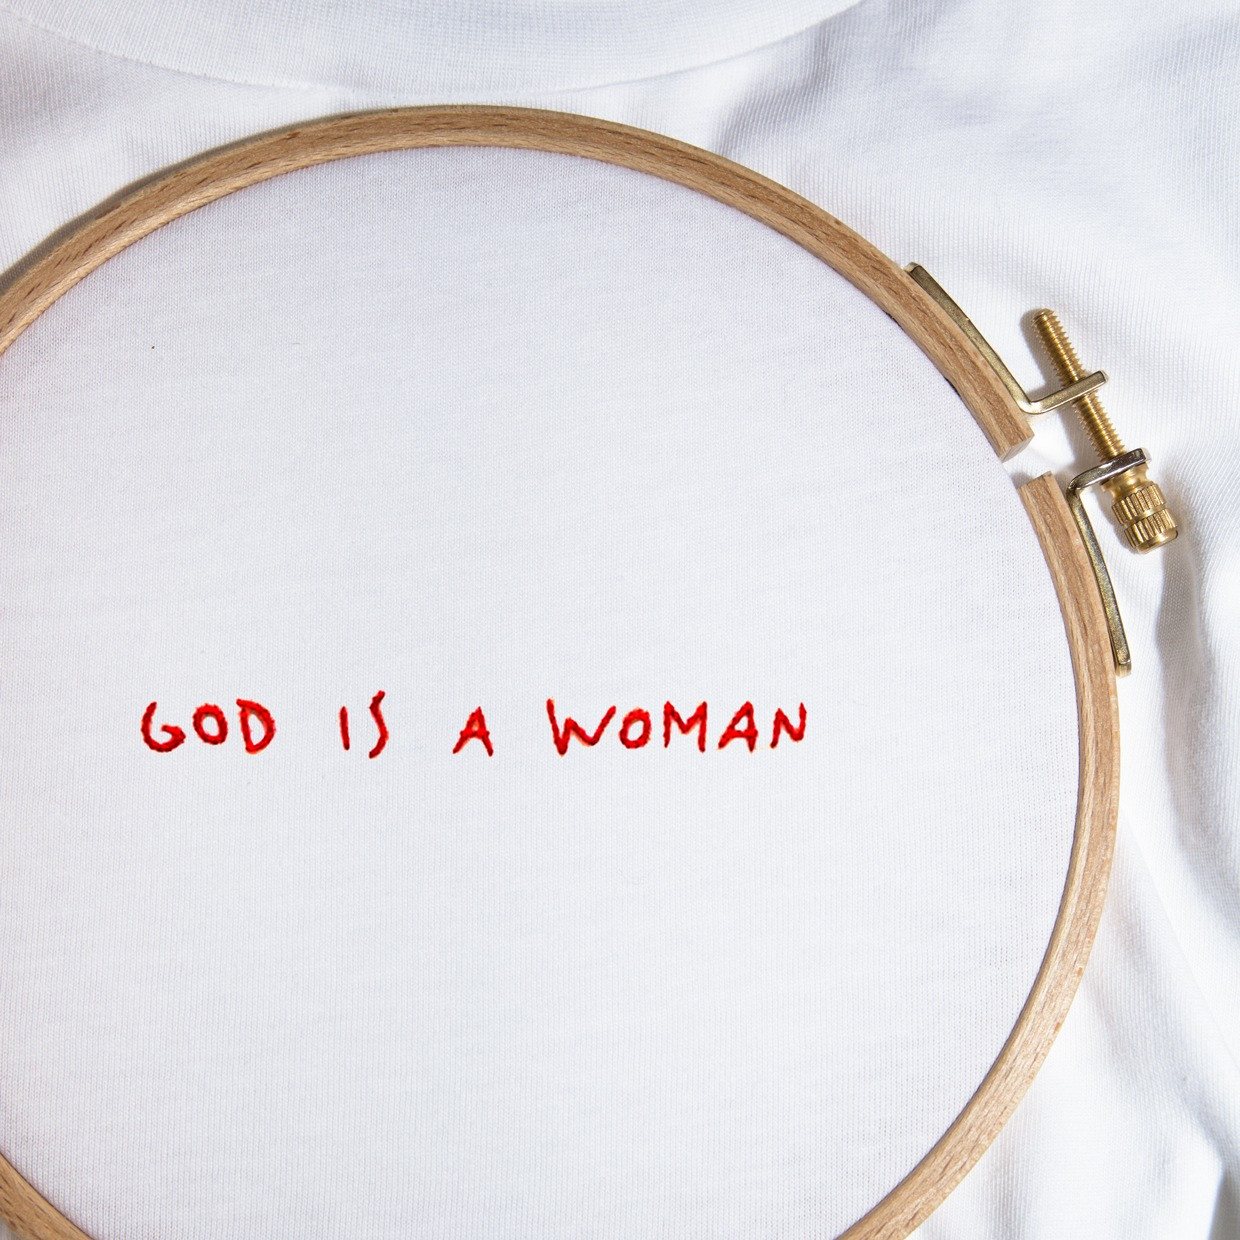 The GOD IS A WOMAN tee